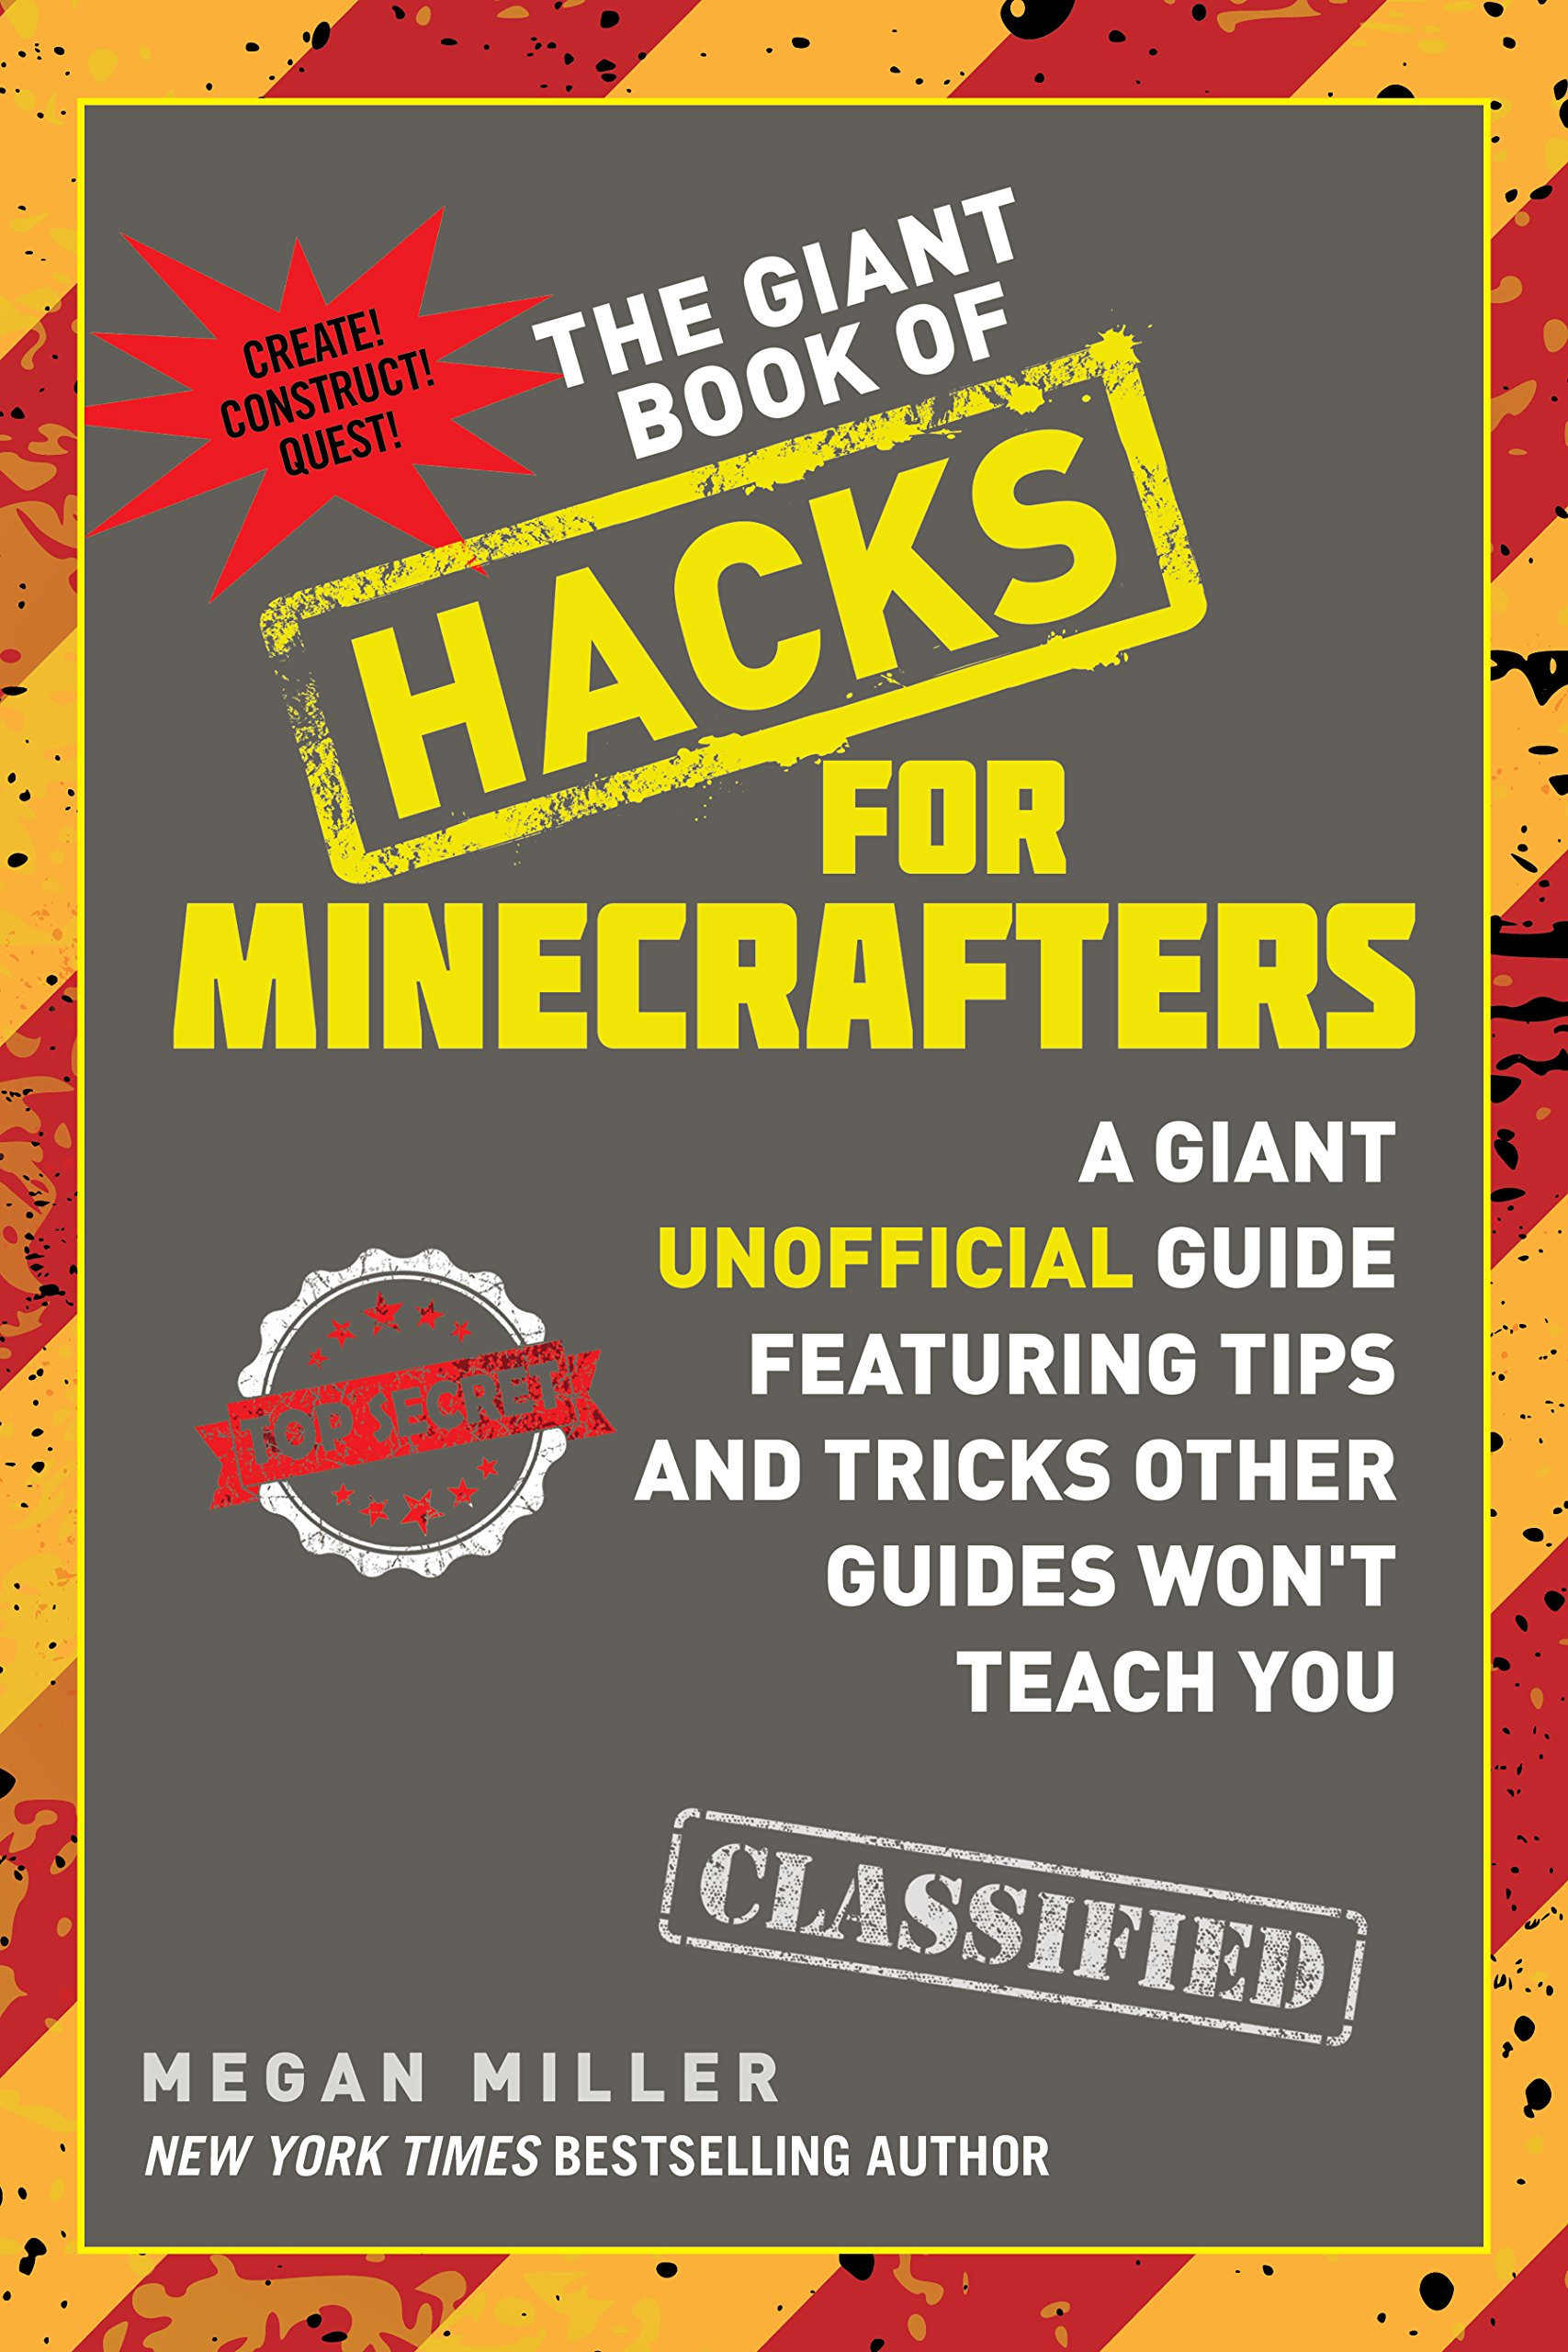 The giant book of hacks for minecrafters a giant unofficial guide the giant book of hacks for minecrafters a giant unofficial guide featuring tips and tricks other guides wont teach you megan miller 9781510727205 fandeluxe Gallery